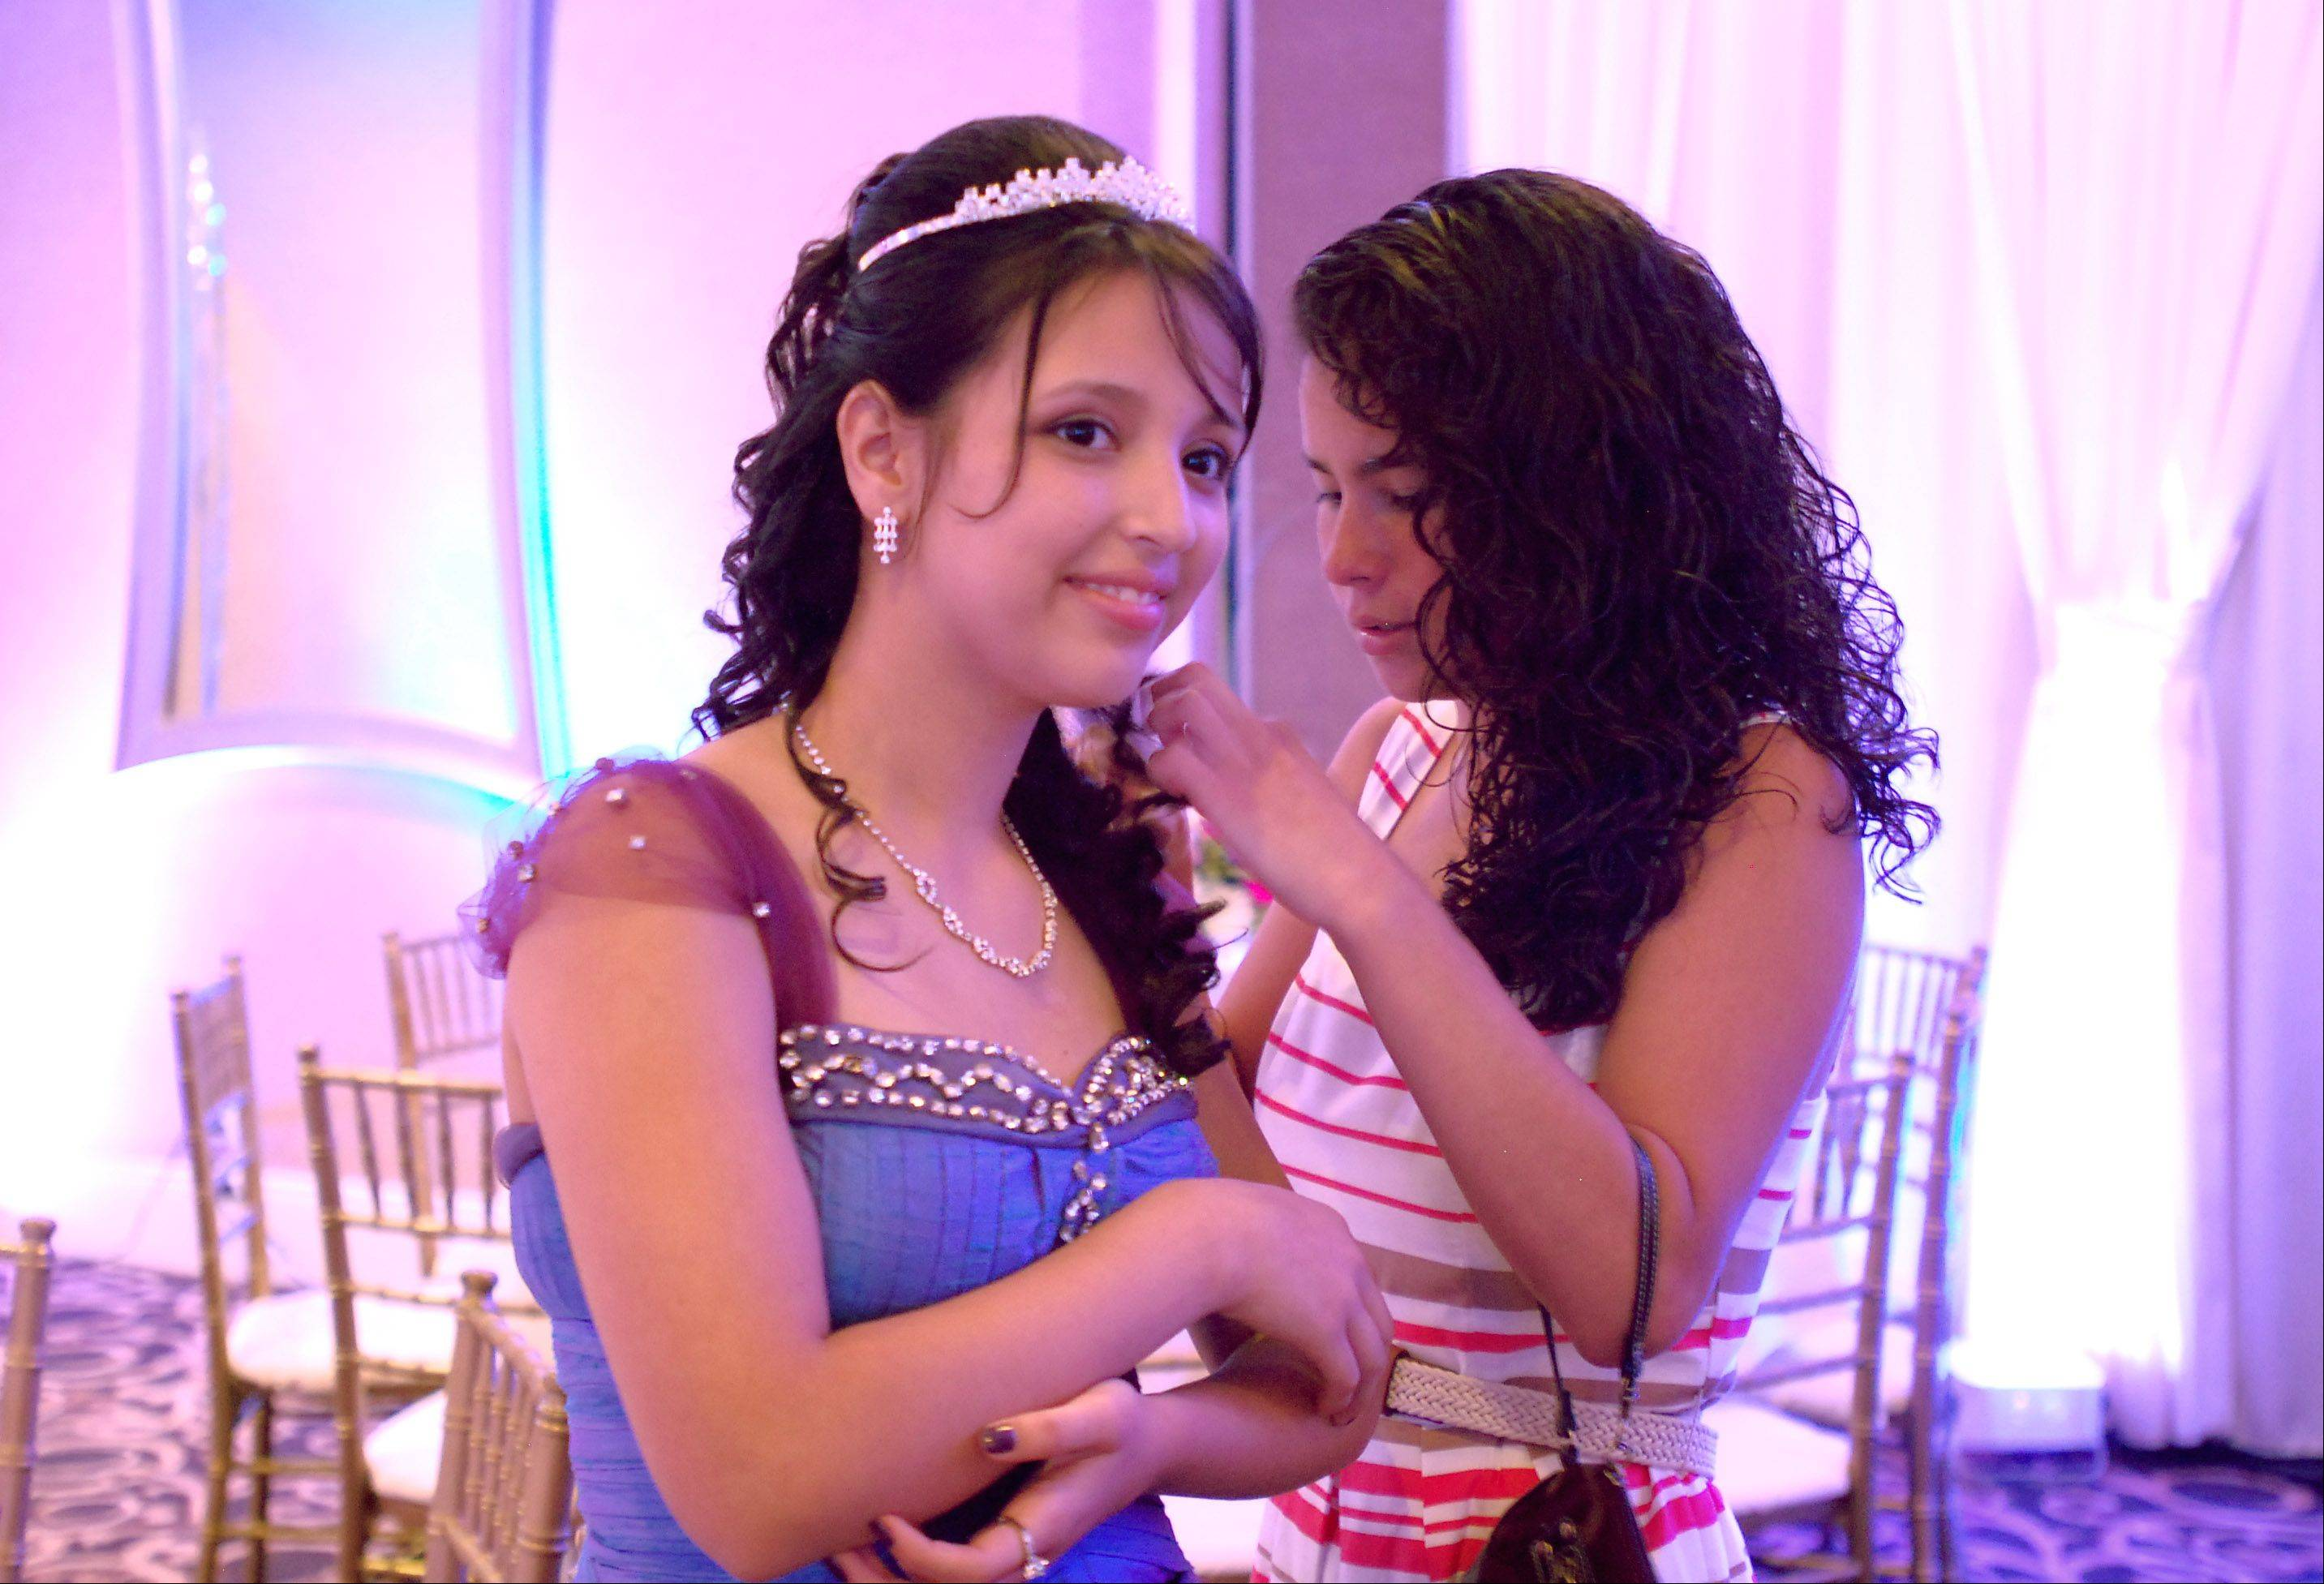 Zareli Saavedra, 14, of Hanover Park gets a little help from Eugenia Aguilera, 19, of Schaumburg. Zareli, who's battling brain cancer, had her dream of a quincea�era came true thanks to the Make-A-Wish foundation Sunday in Streamwood.